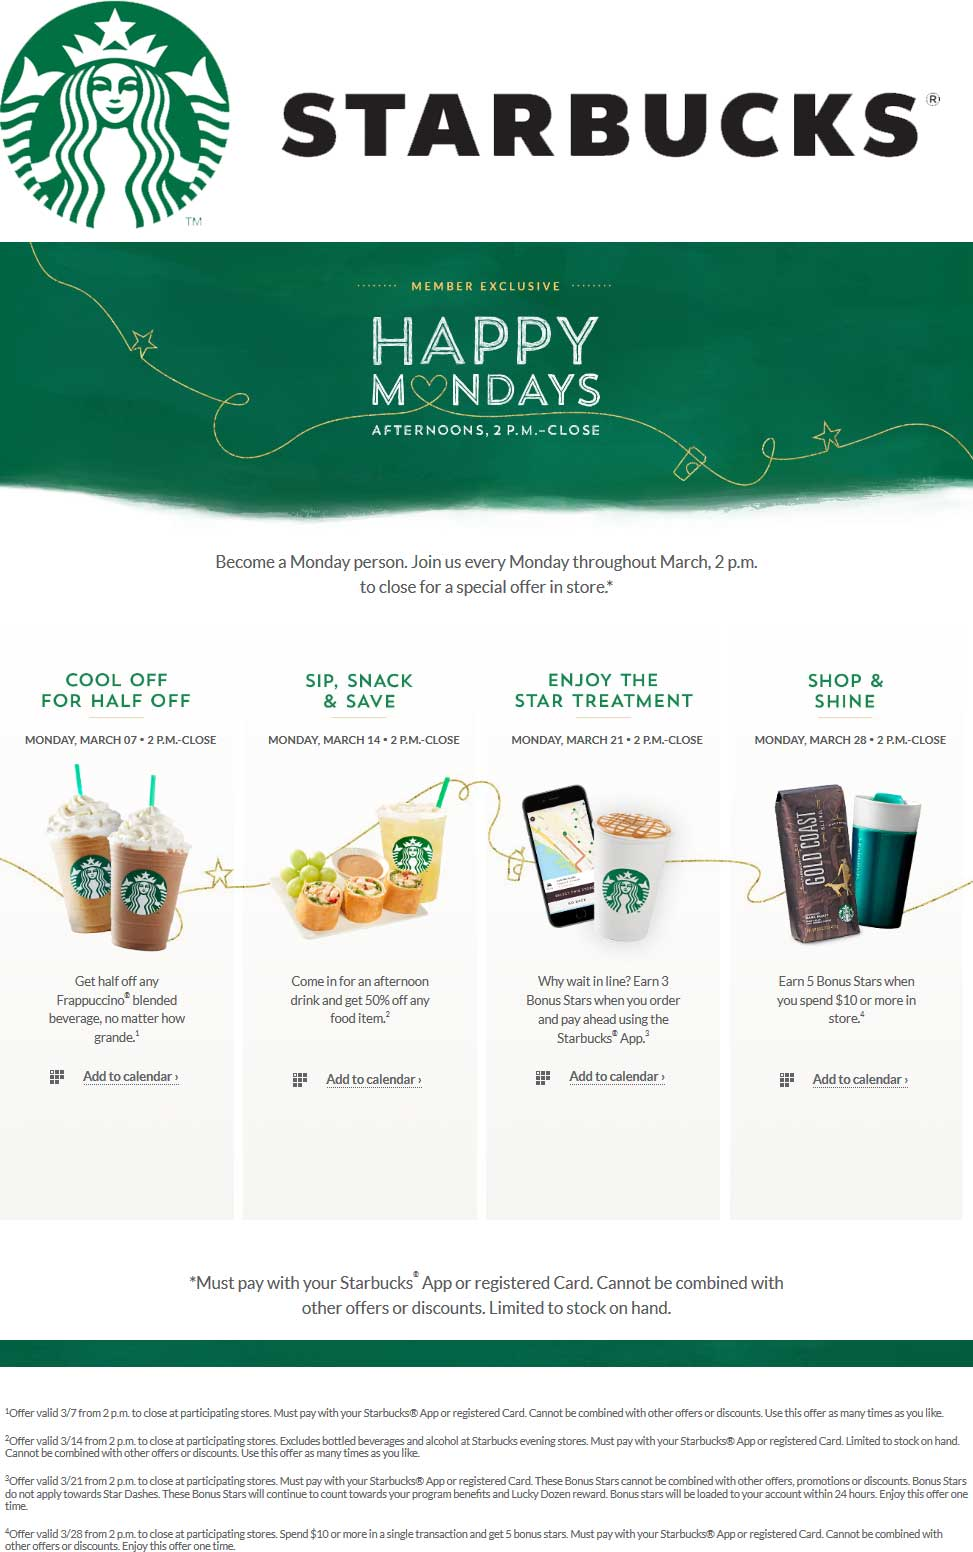 Starbucks Coupon July 2018 50% off Frappuccinos Monday after 2pm at Starbucks